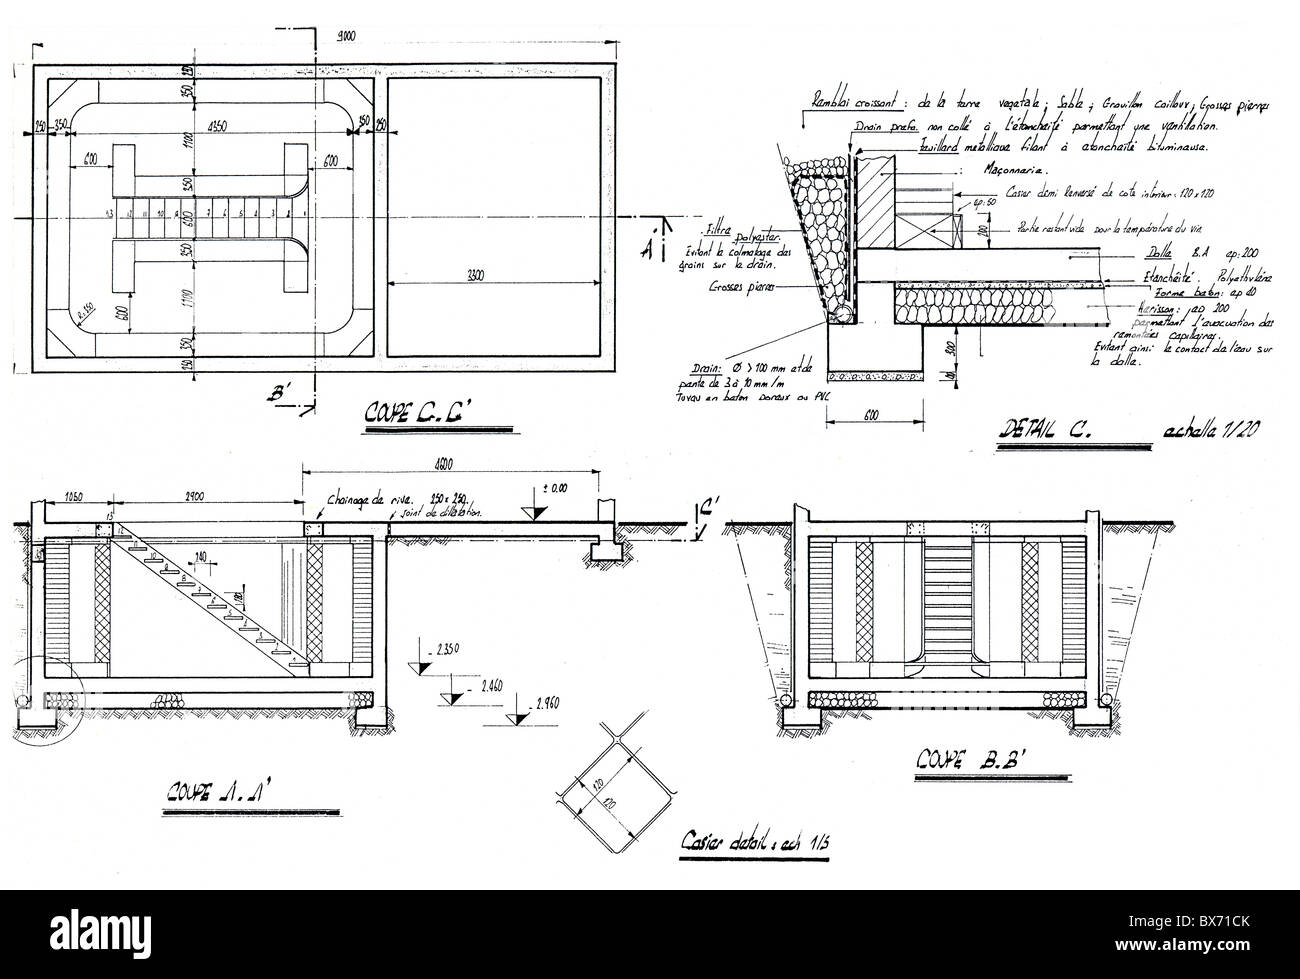 Detail of an architecture blueprint with explanations handwritten detail of an architecture blueprint with explanations handwritten in french malvernweather Images